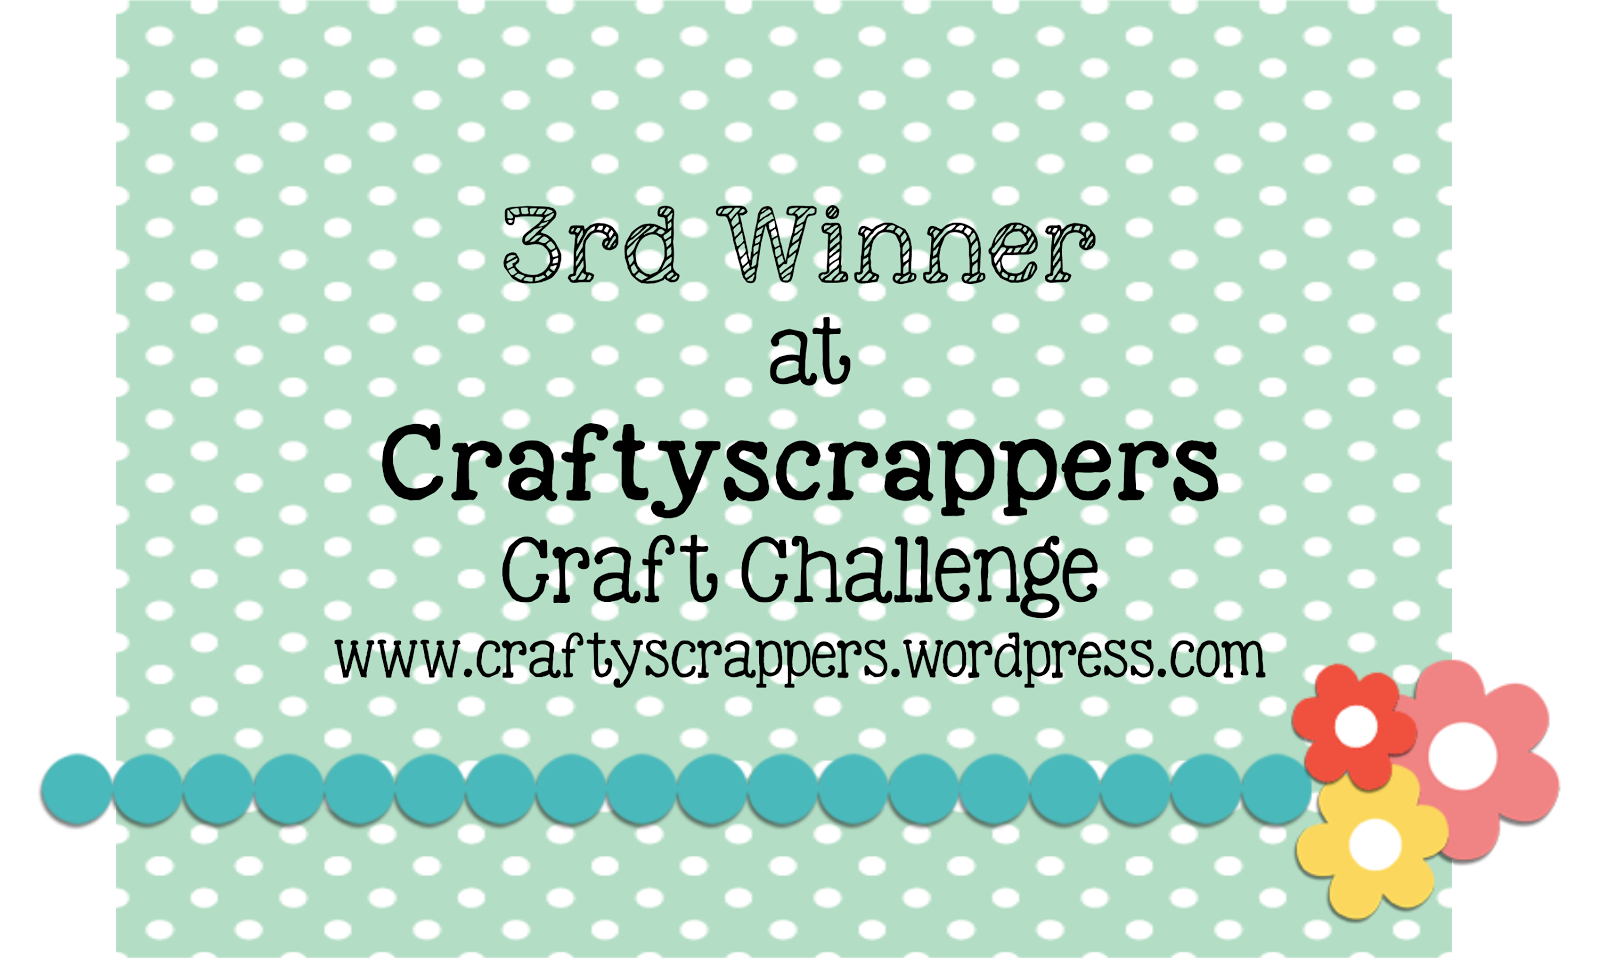 3rd Winner at Craftyscrappers Challenge#14